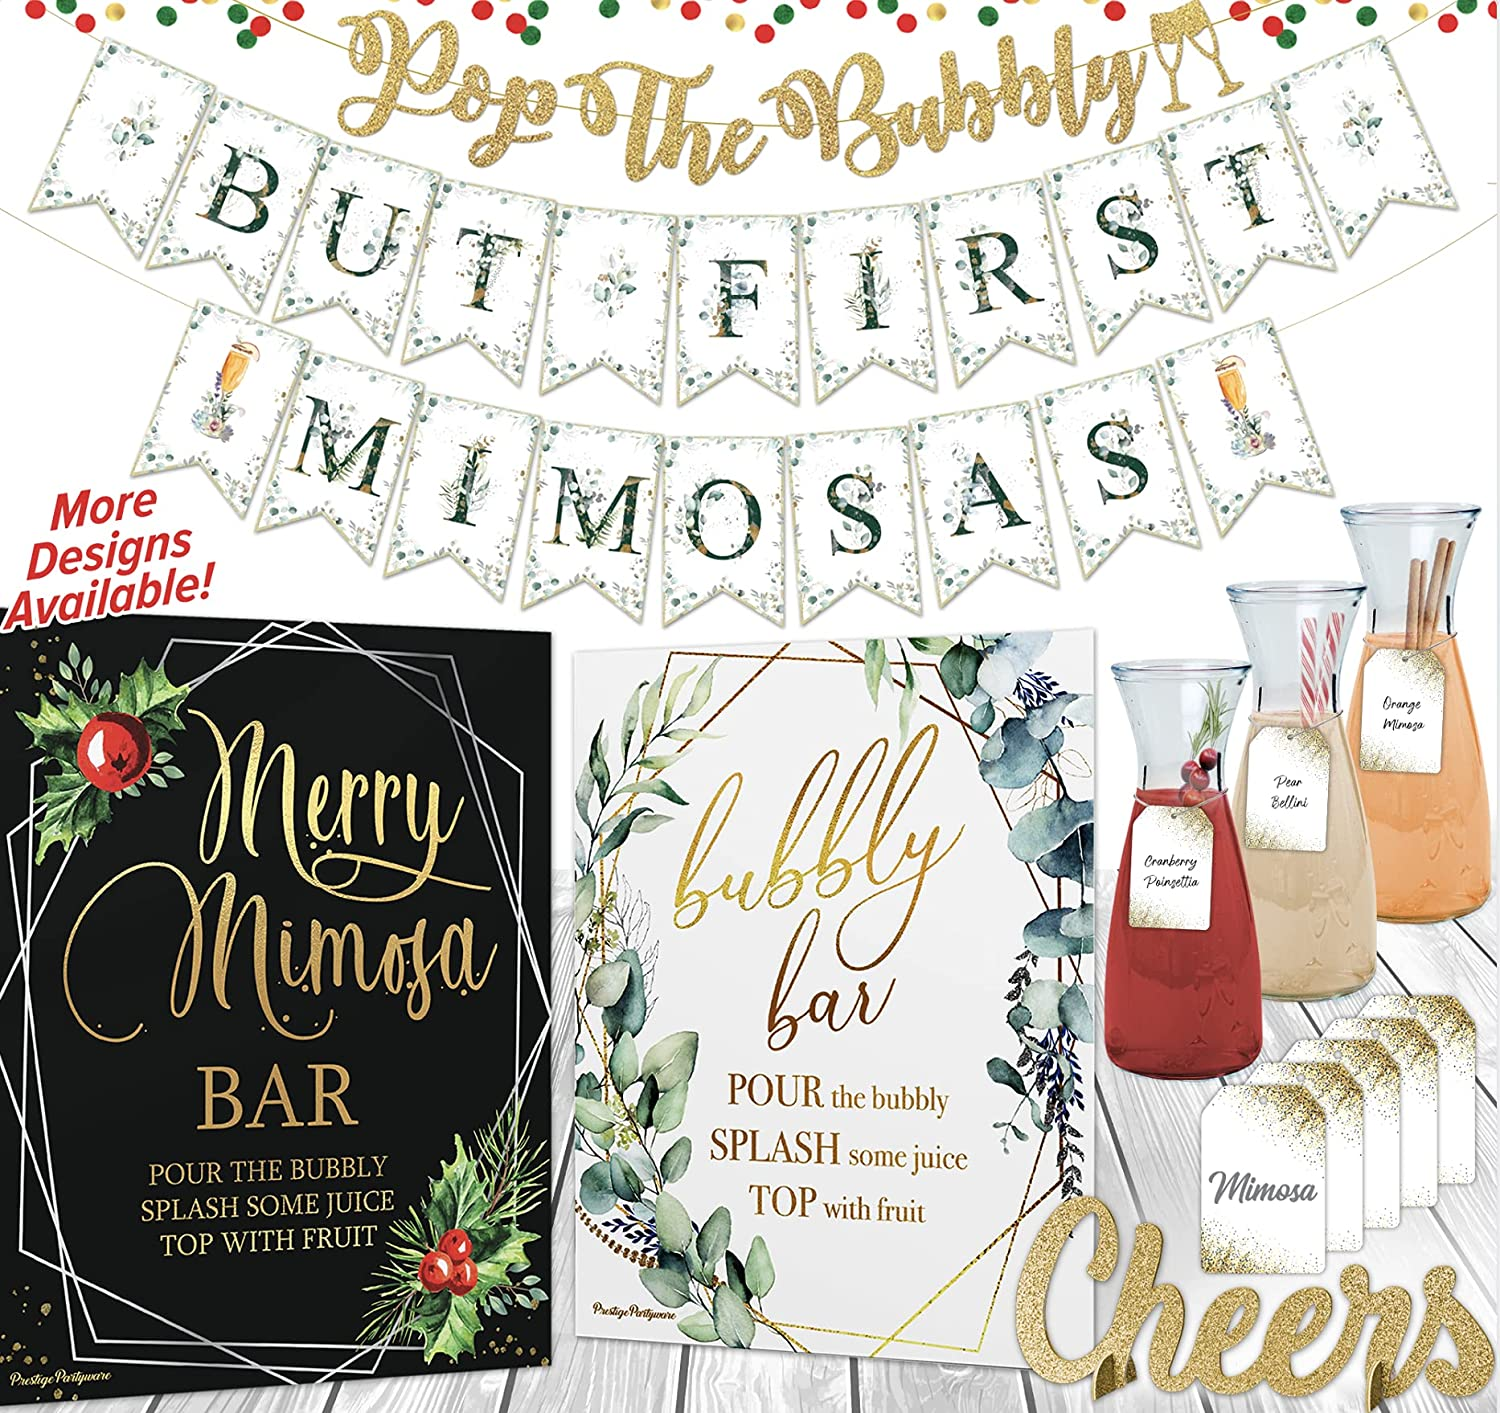 Mimosa Bar Kit | Drinks Table Decor! Merry Friendsmas, Gender Reveal Christmas Theme, Before Christmas Baby Shower, Lets Get Lit Christmas Birthday Decorations, Adult Bridal Brunch Sign Set (Holiday)